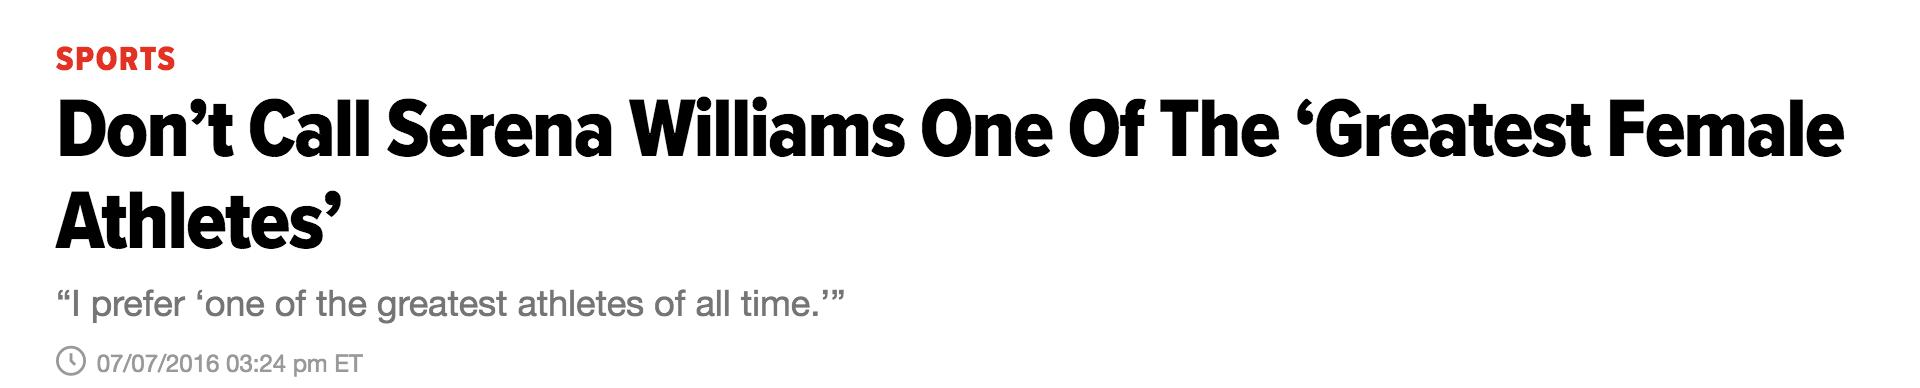 Serena Williams Greatest Athlete Headline